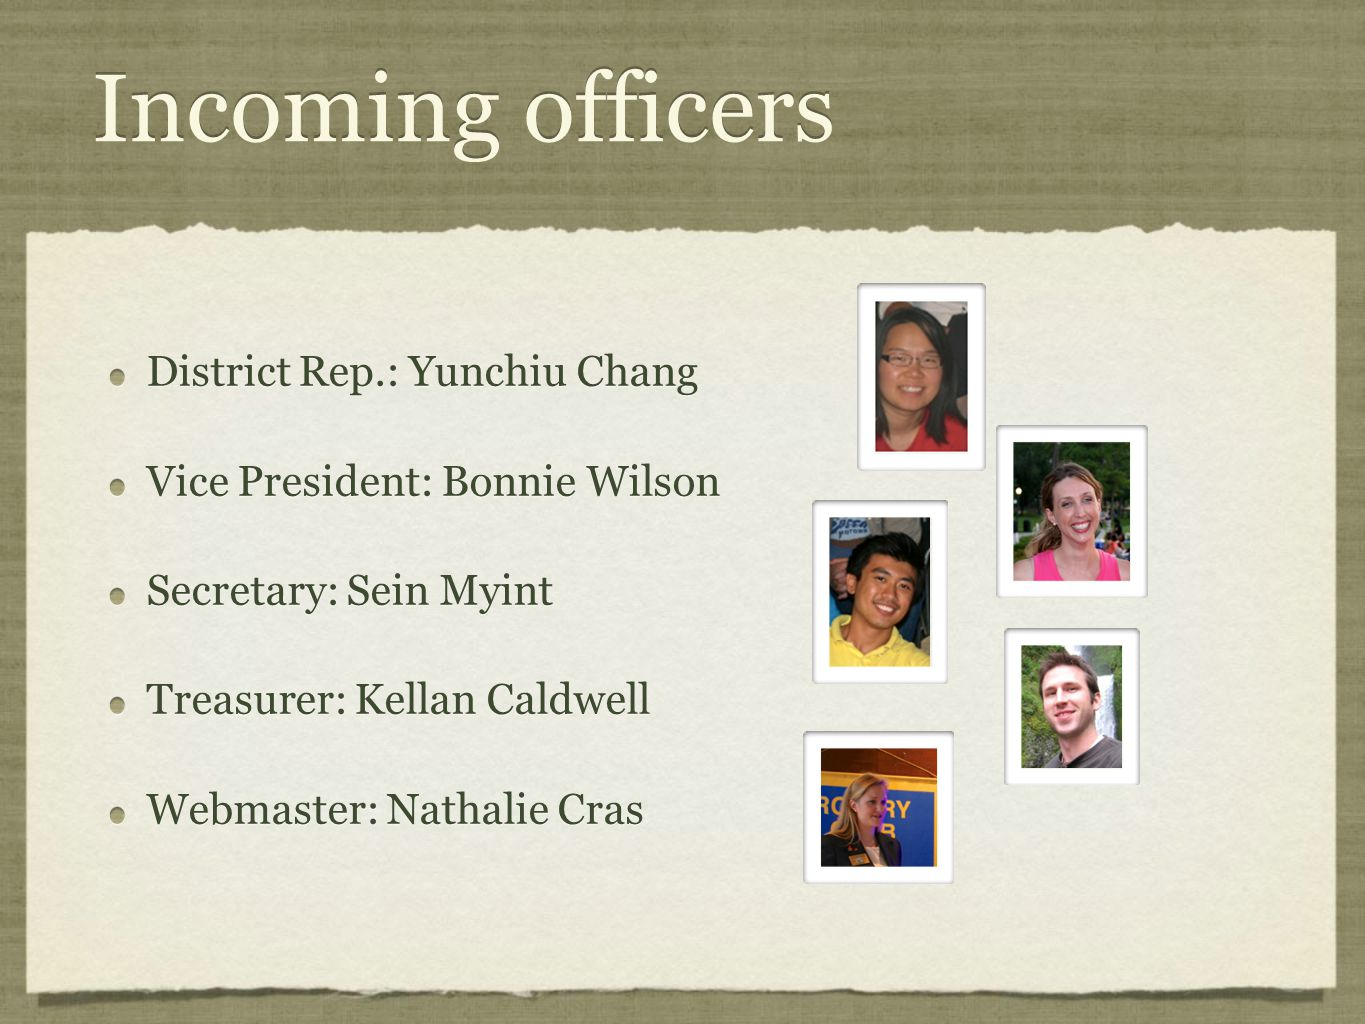 Incoming officers District Rep.: Yunchiu Chang Vice President: Bonnie Wilson Secretary: Sein Myint Treasurer: Kellan Caldwell Webmaster: Nathalie Cras District Rep.: Yunchiu Chang Vice President: Bonnie Wilson Secretary: Sein Myint Treasurer: Kellan Caldwell Webmaster: Nathalie Cras